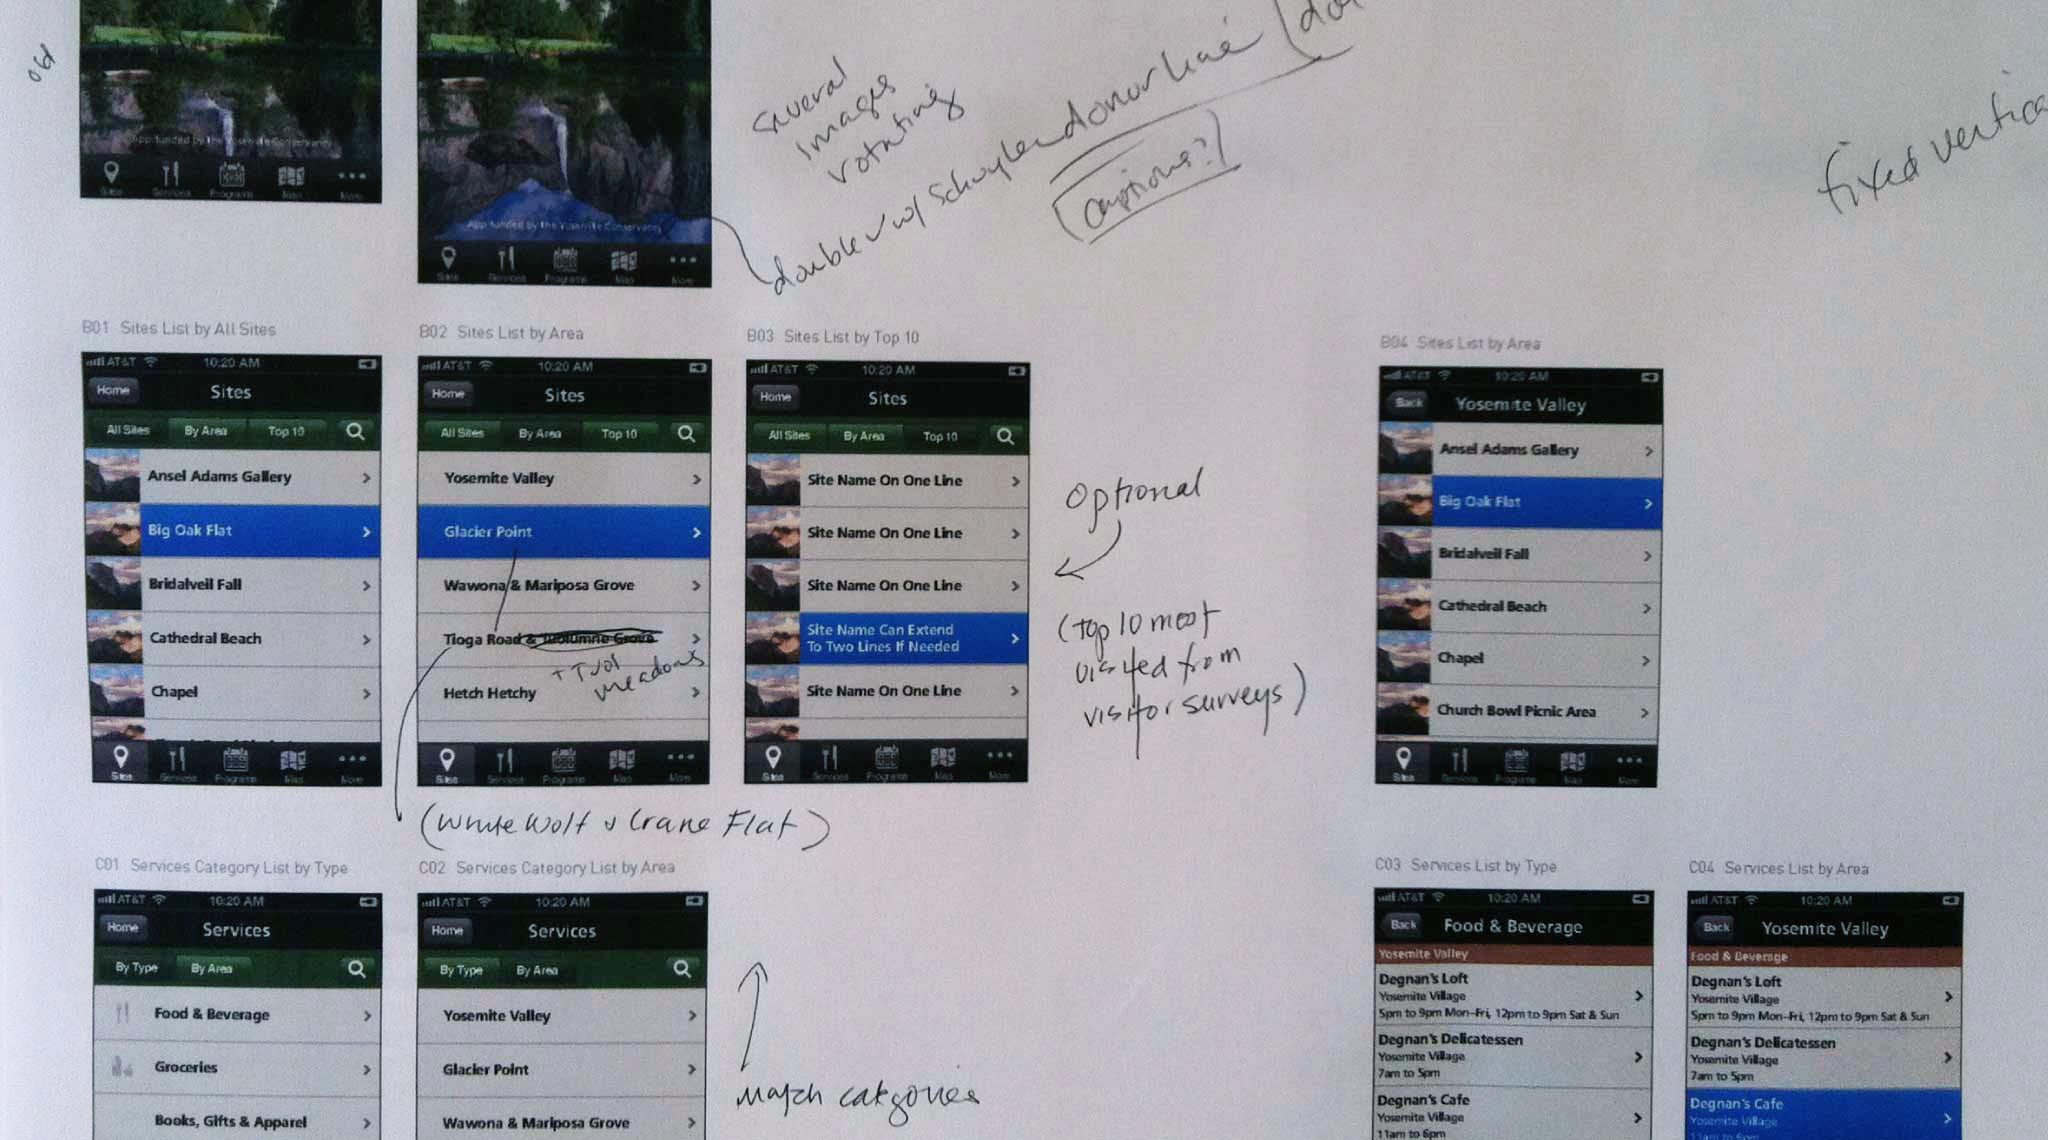 Slider Image: Print out of app visual design with hand-written design comments and notes